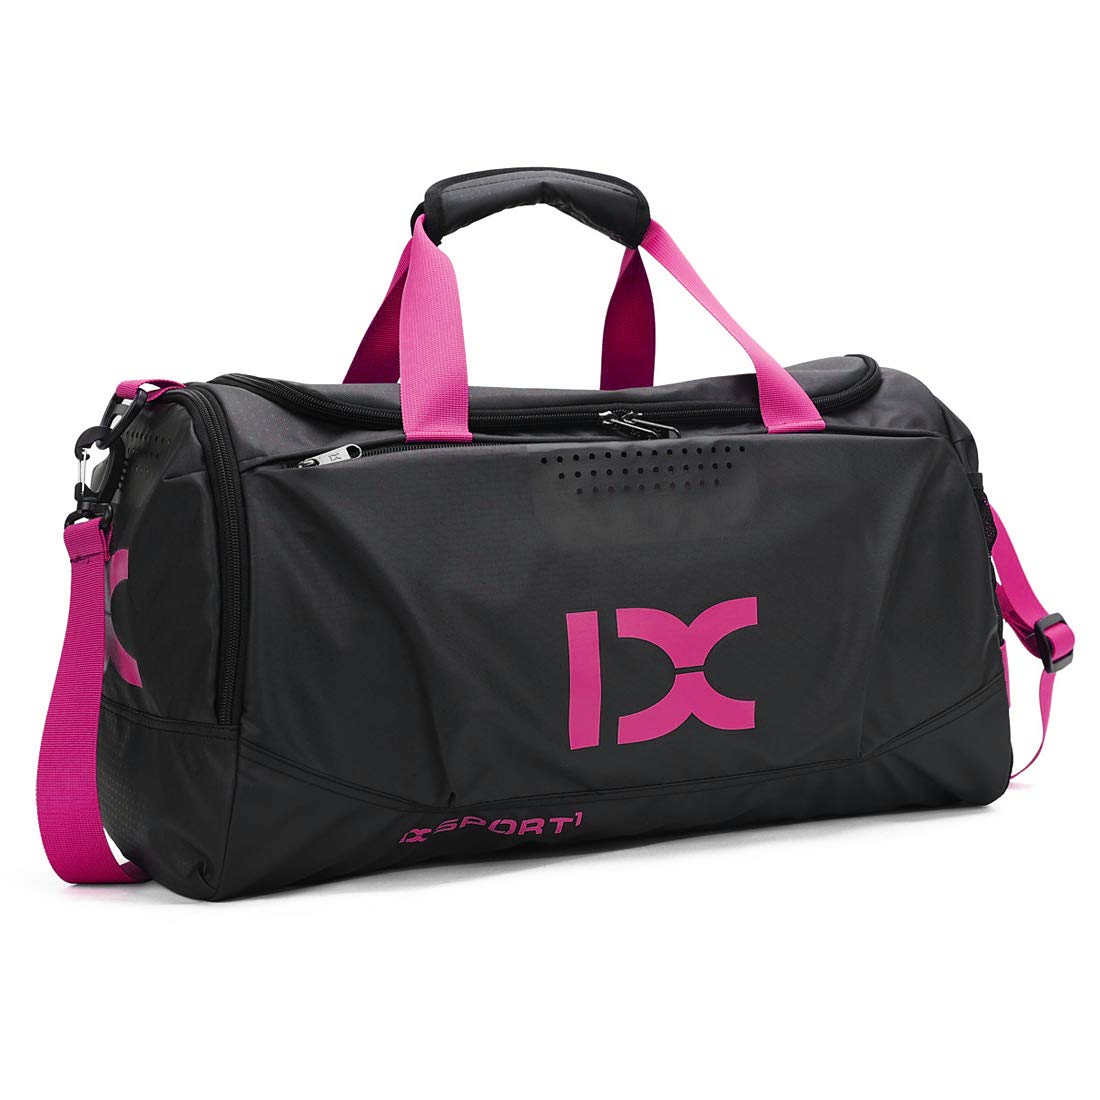 HUANGHENG Sports Gym Bag with Wet Pocket and Shoes Compartment Travel Duffel Bag for Men and Women Pink